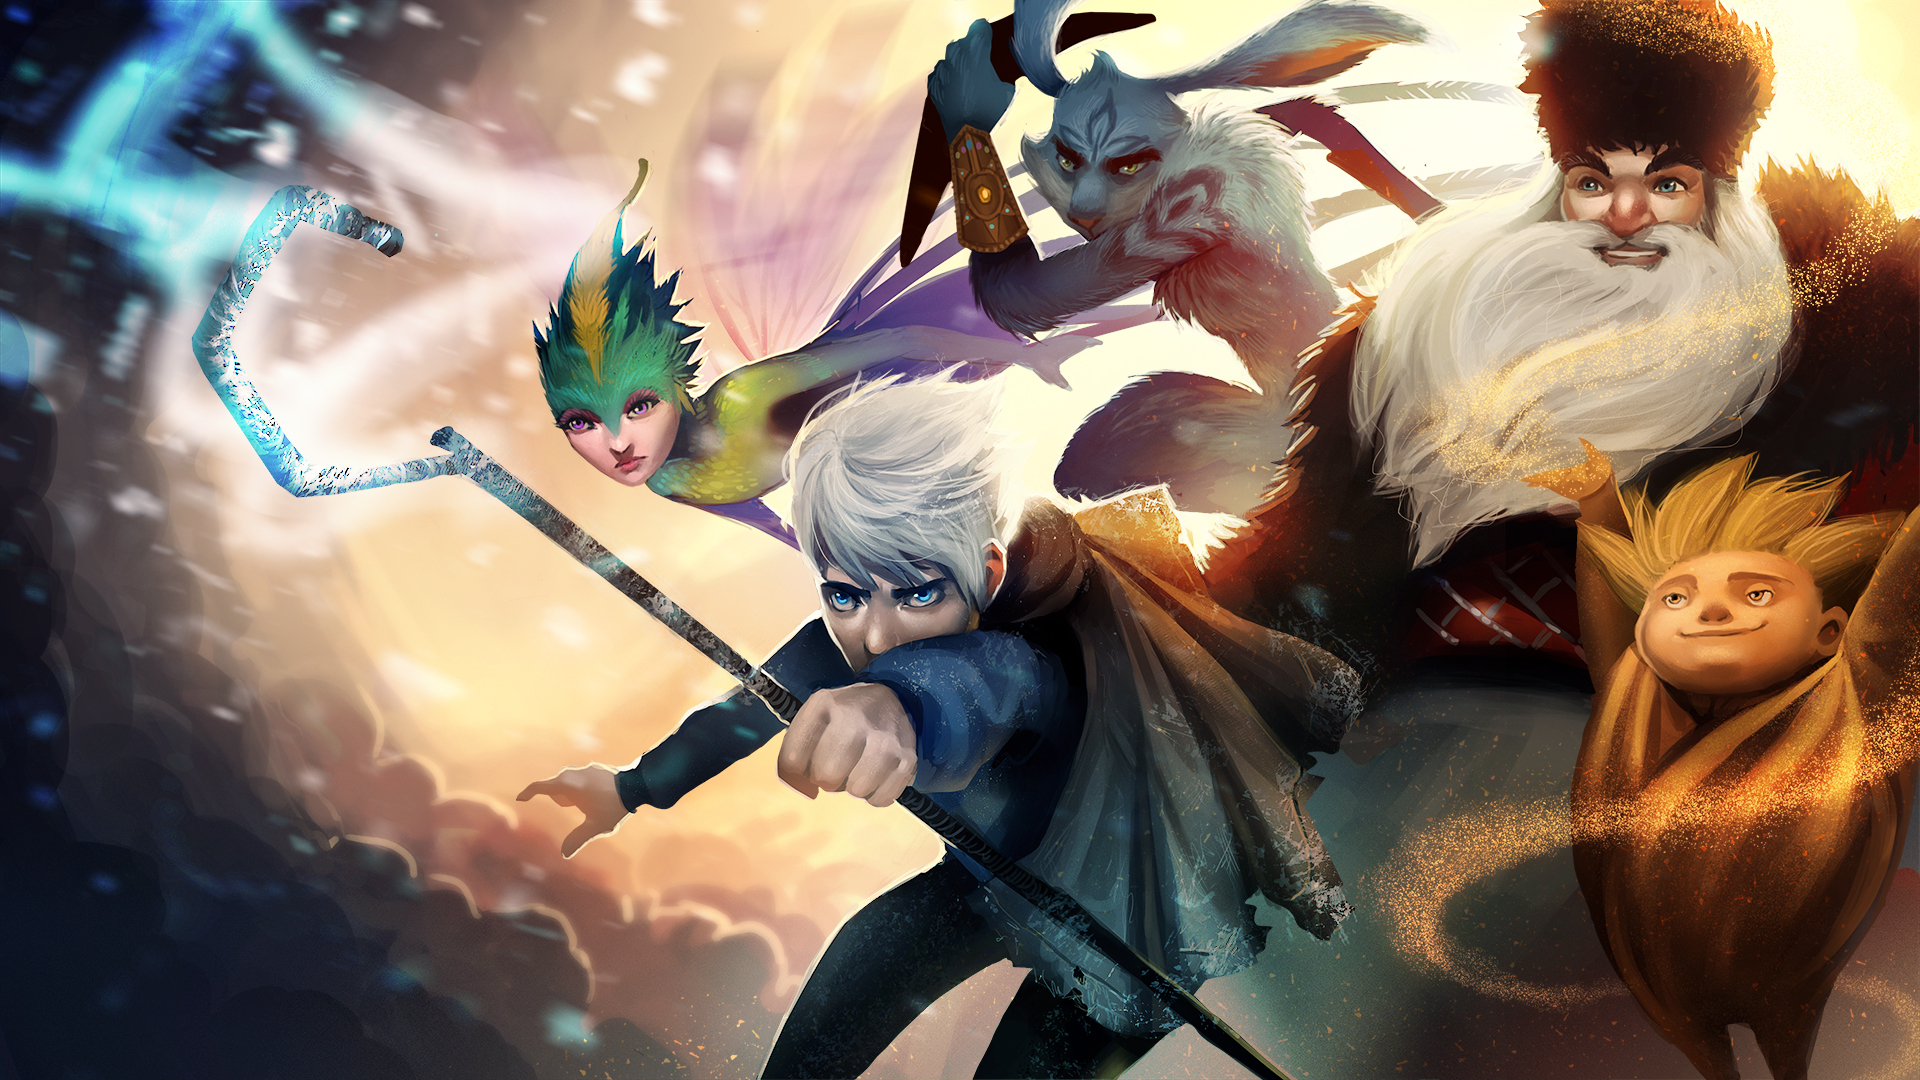 1920x1080 - Rise Of The Guardians Wallpapers 27